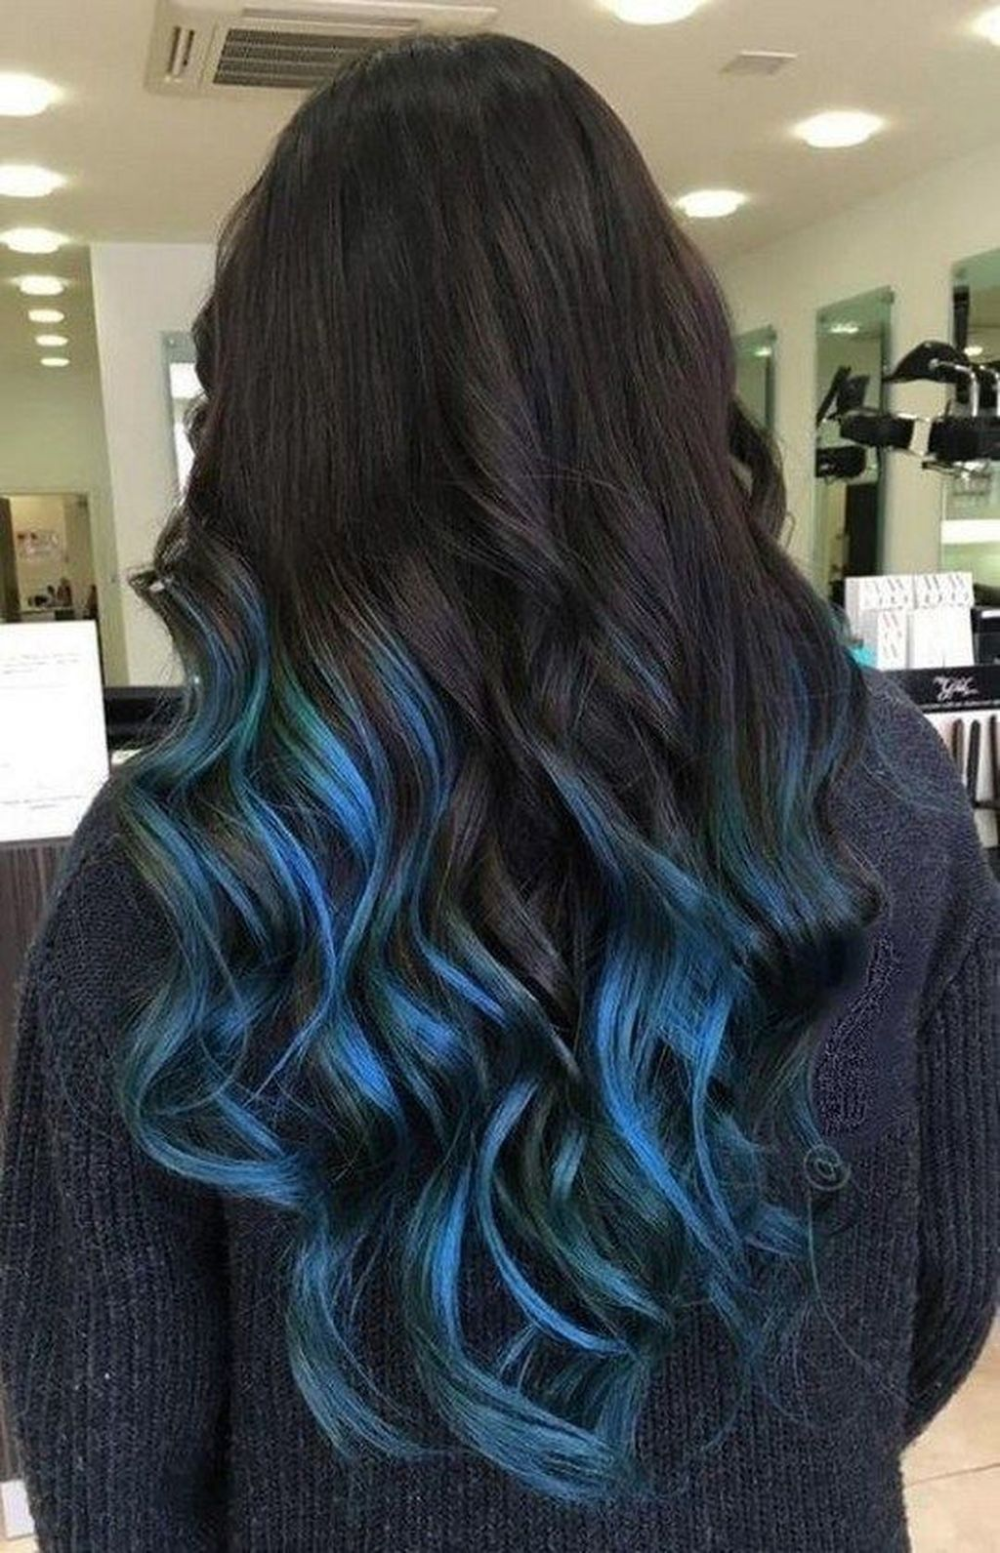 12 hair Blue shades ideas